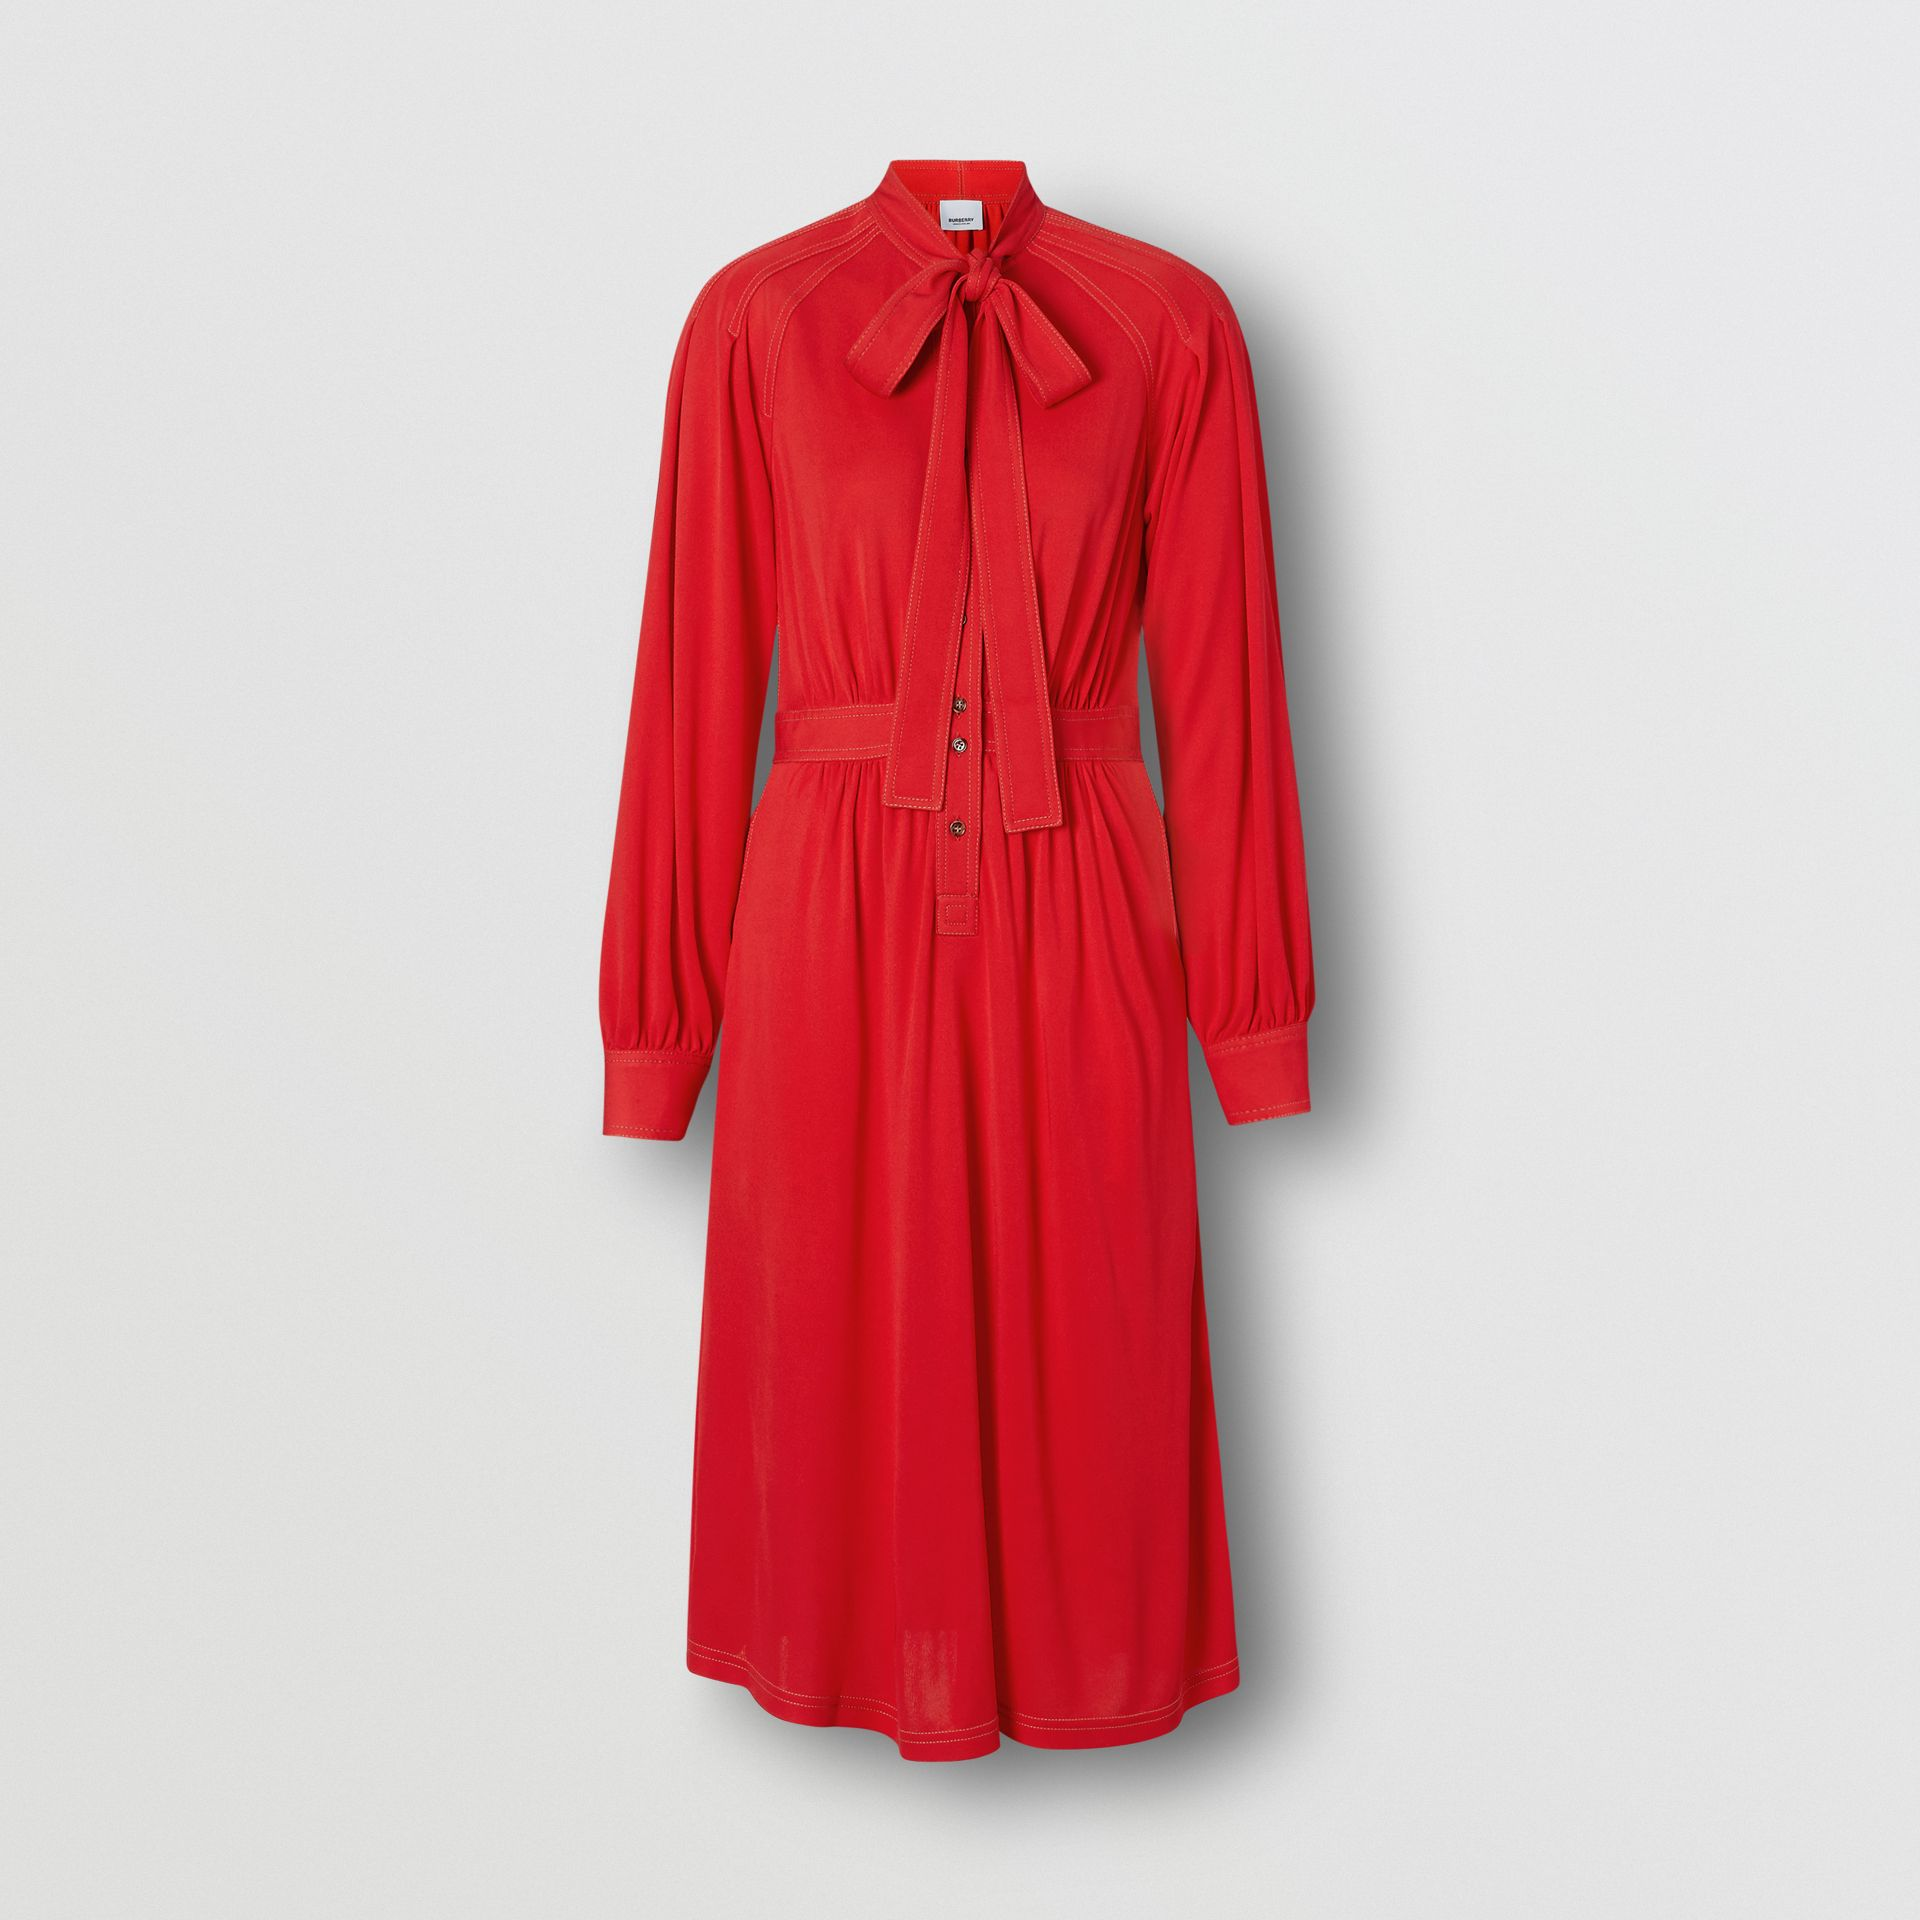 Topstitch Detail Jersey Tie-neck Dress in Bright Red - Women | Burberry Singapore - gallery image 3